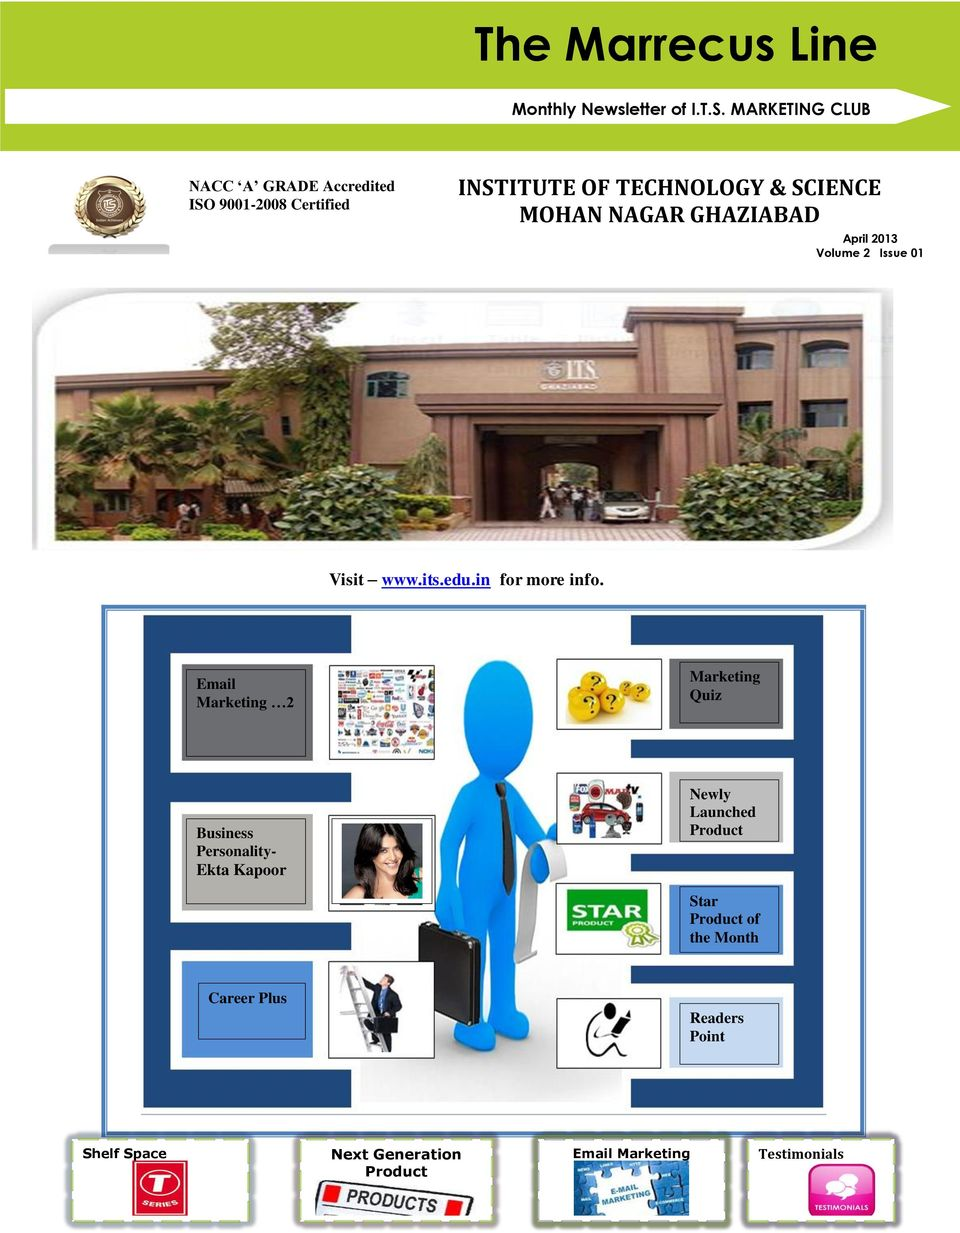 MOHAN NAGAR GHAZIABAD Visit www.its.edu.in for more info.